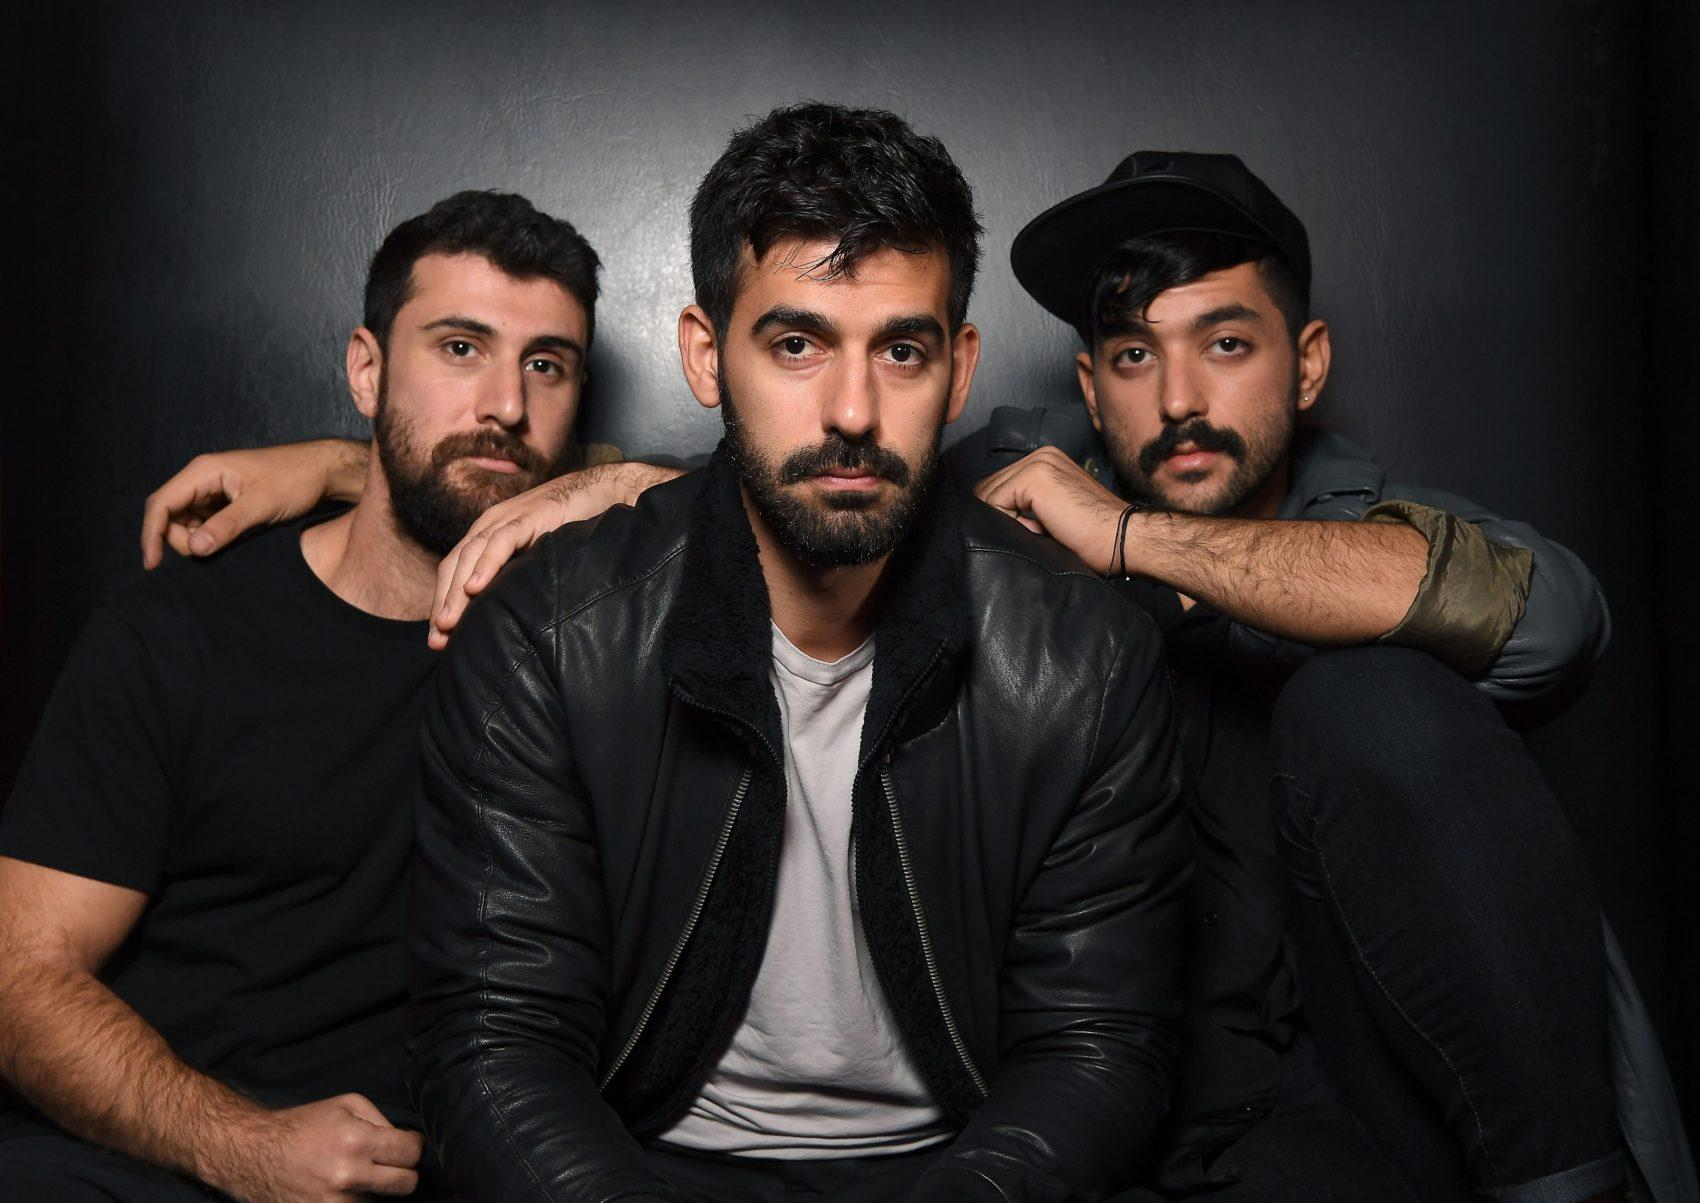 Lebanese Indie Pop Band Mashrou' Leila Gives Voice To Oppressed